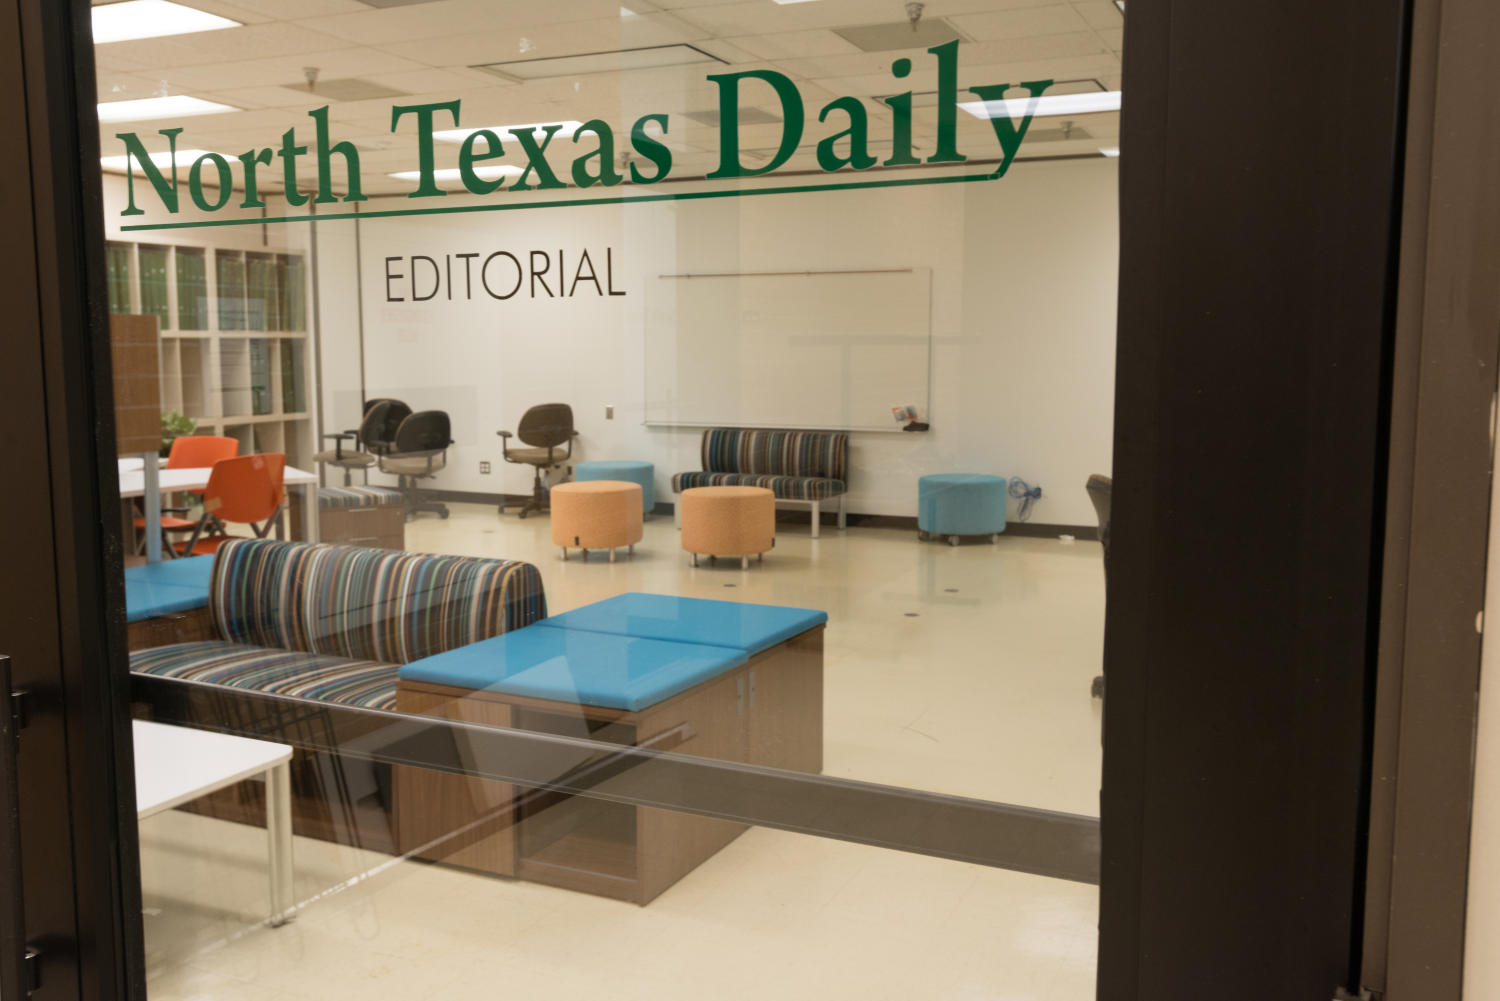 [North Texas Daily Editorial Offices]                                                                                                      [Sequence #]: 1 of 1